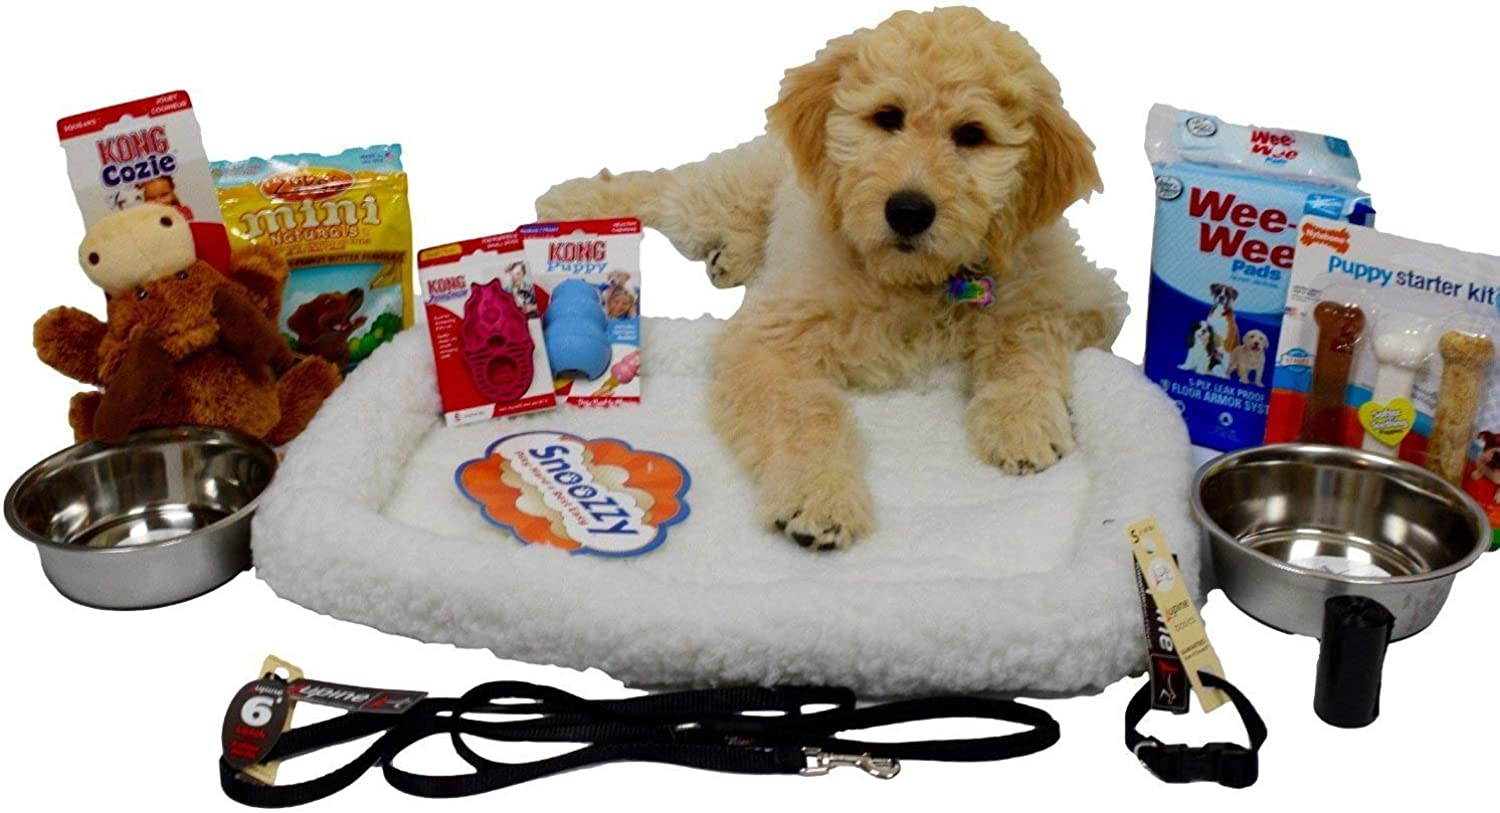 Open Road Goods Puppy Starter Kit Bundle Deluxe Edition in a Gift Box, All Top Name, 5 Star Brands